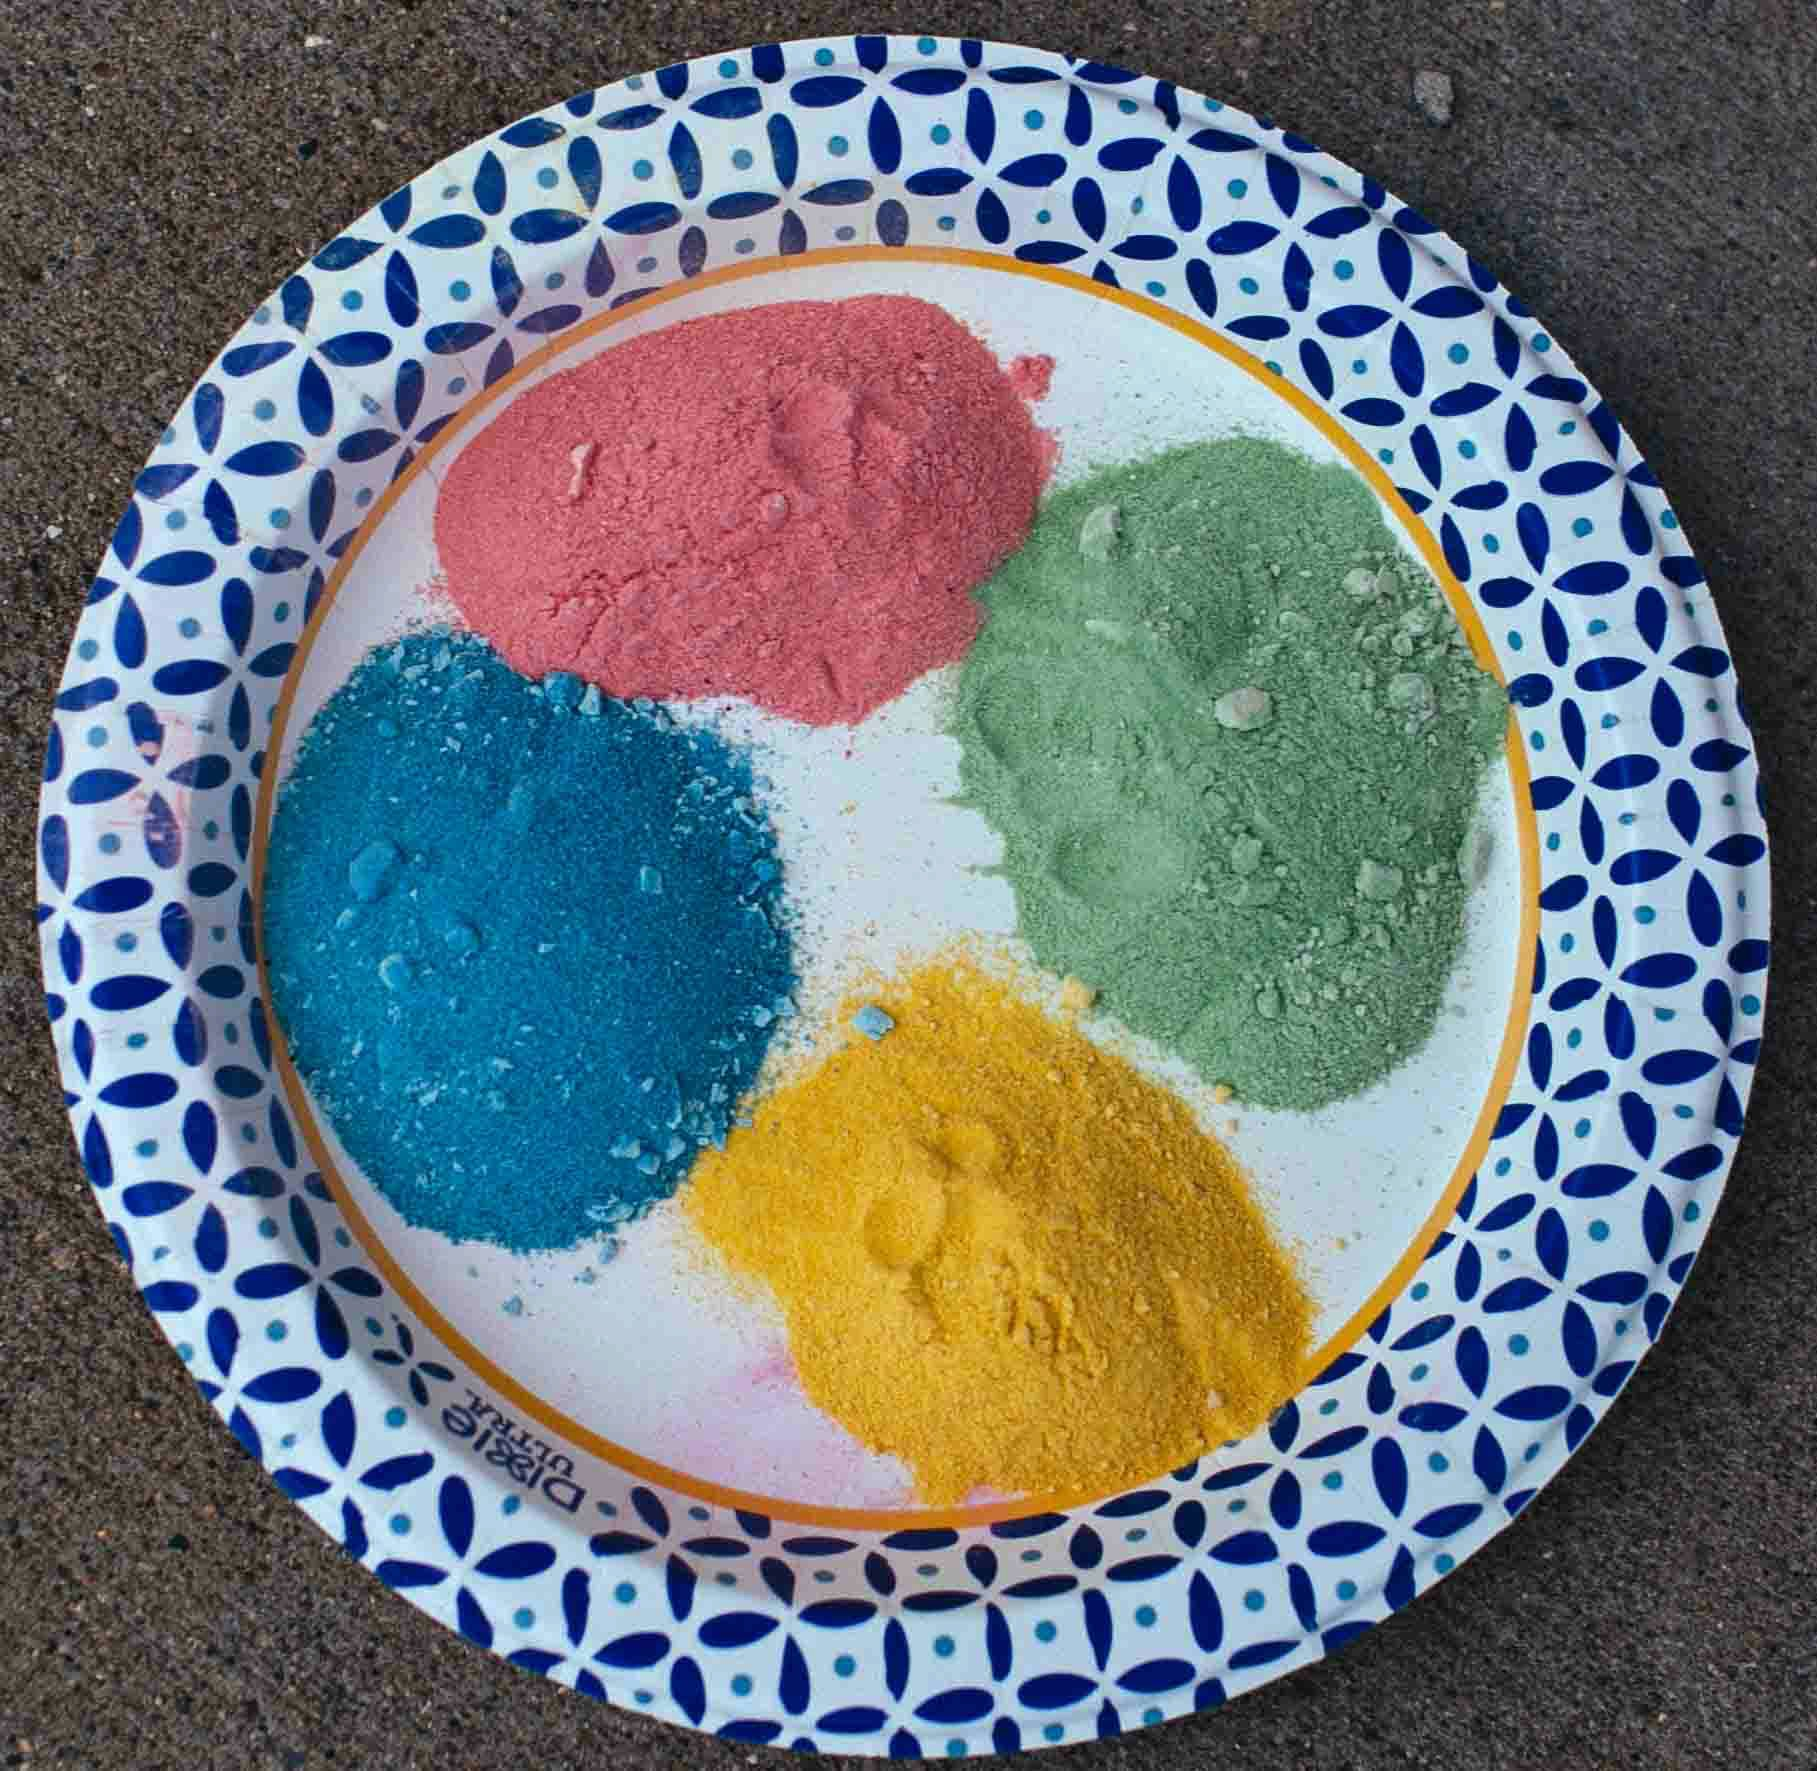 How To Make Natural Holi Colors At Home